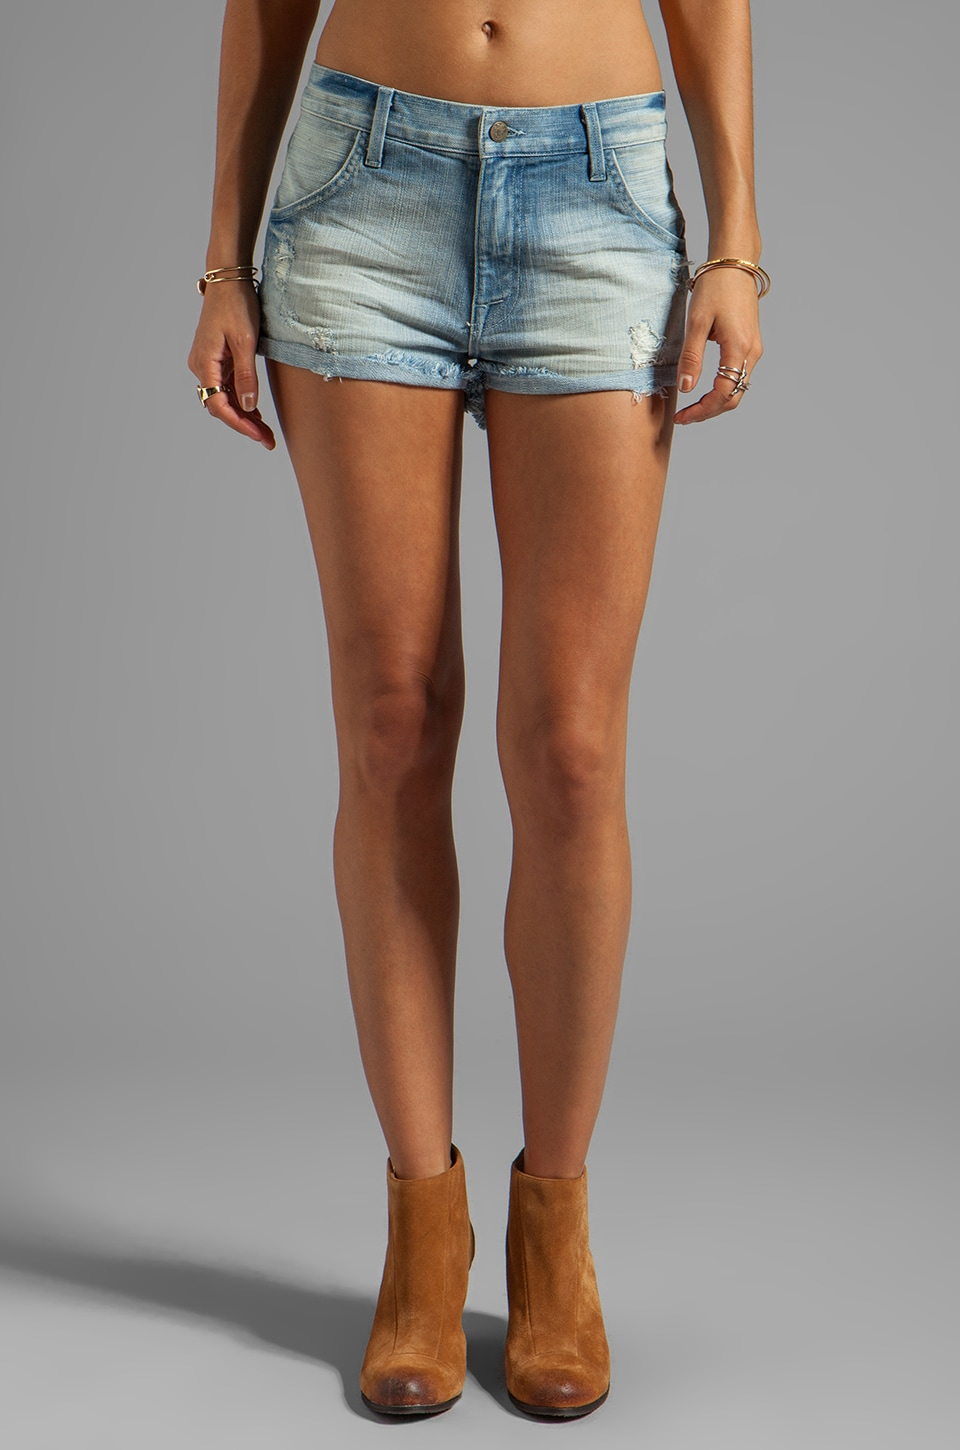 Wildfox Couture Michelle Cut Off Shorts in Secret